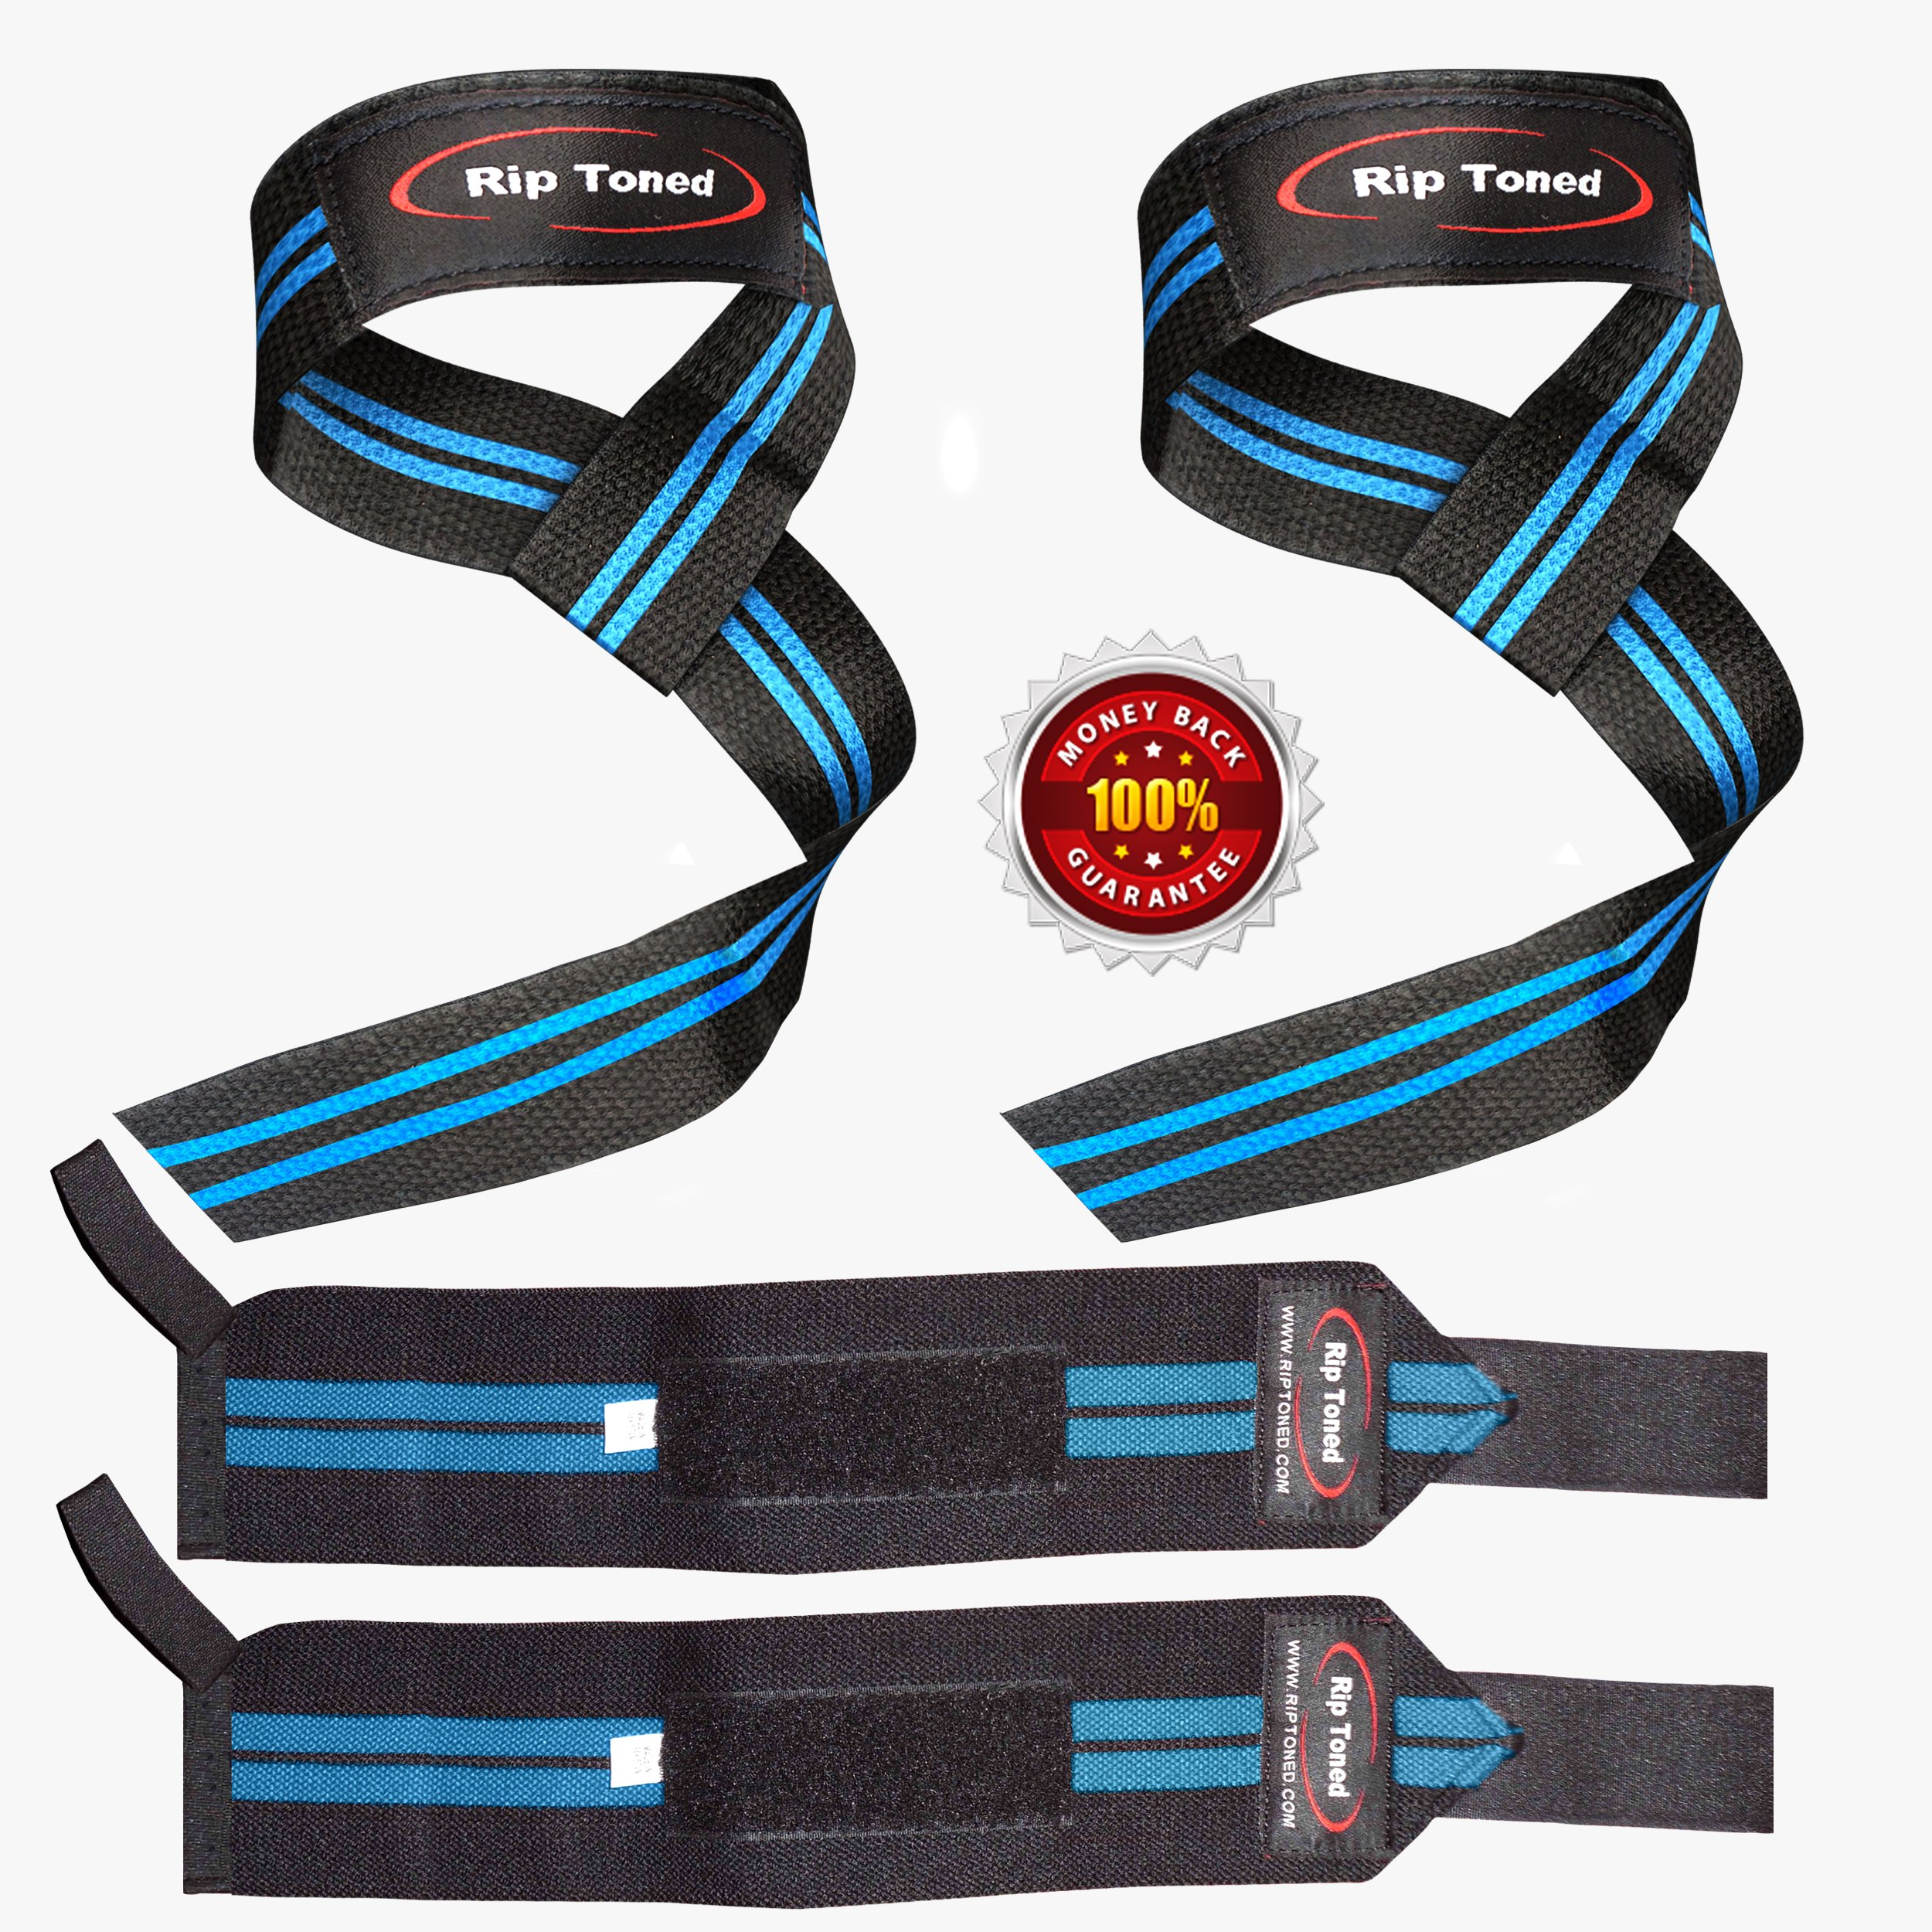 Rip Toned Lifting Straps + Wrist Wraps Bundle (1 Pair of Each) Bonus Ebook for Weightlifting, Xfit, Workout, Gym, Powerlifting, Bodybuilding - Lifetime Replacement Warranty! by Rip Toned